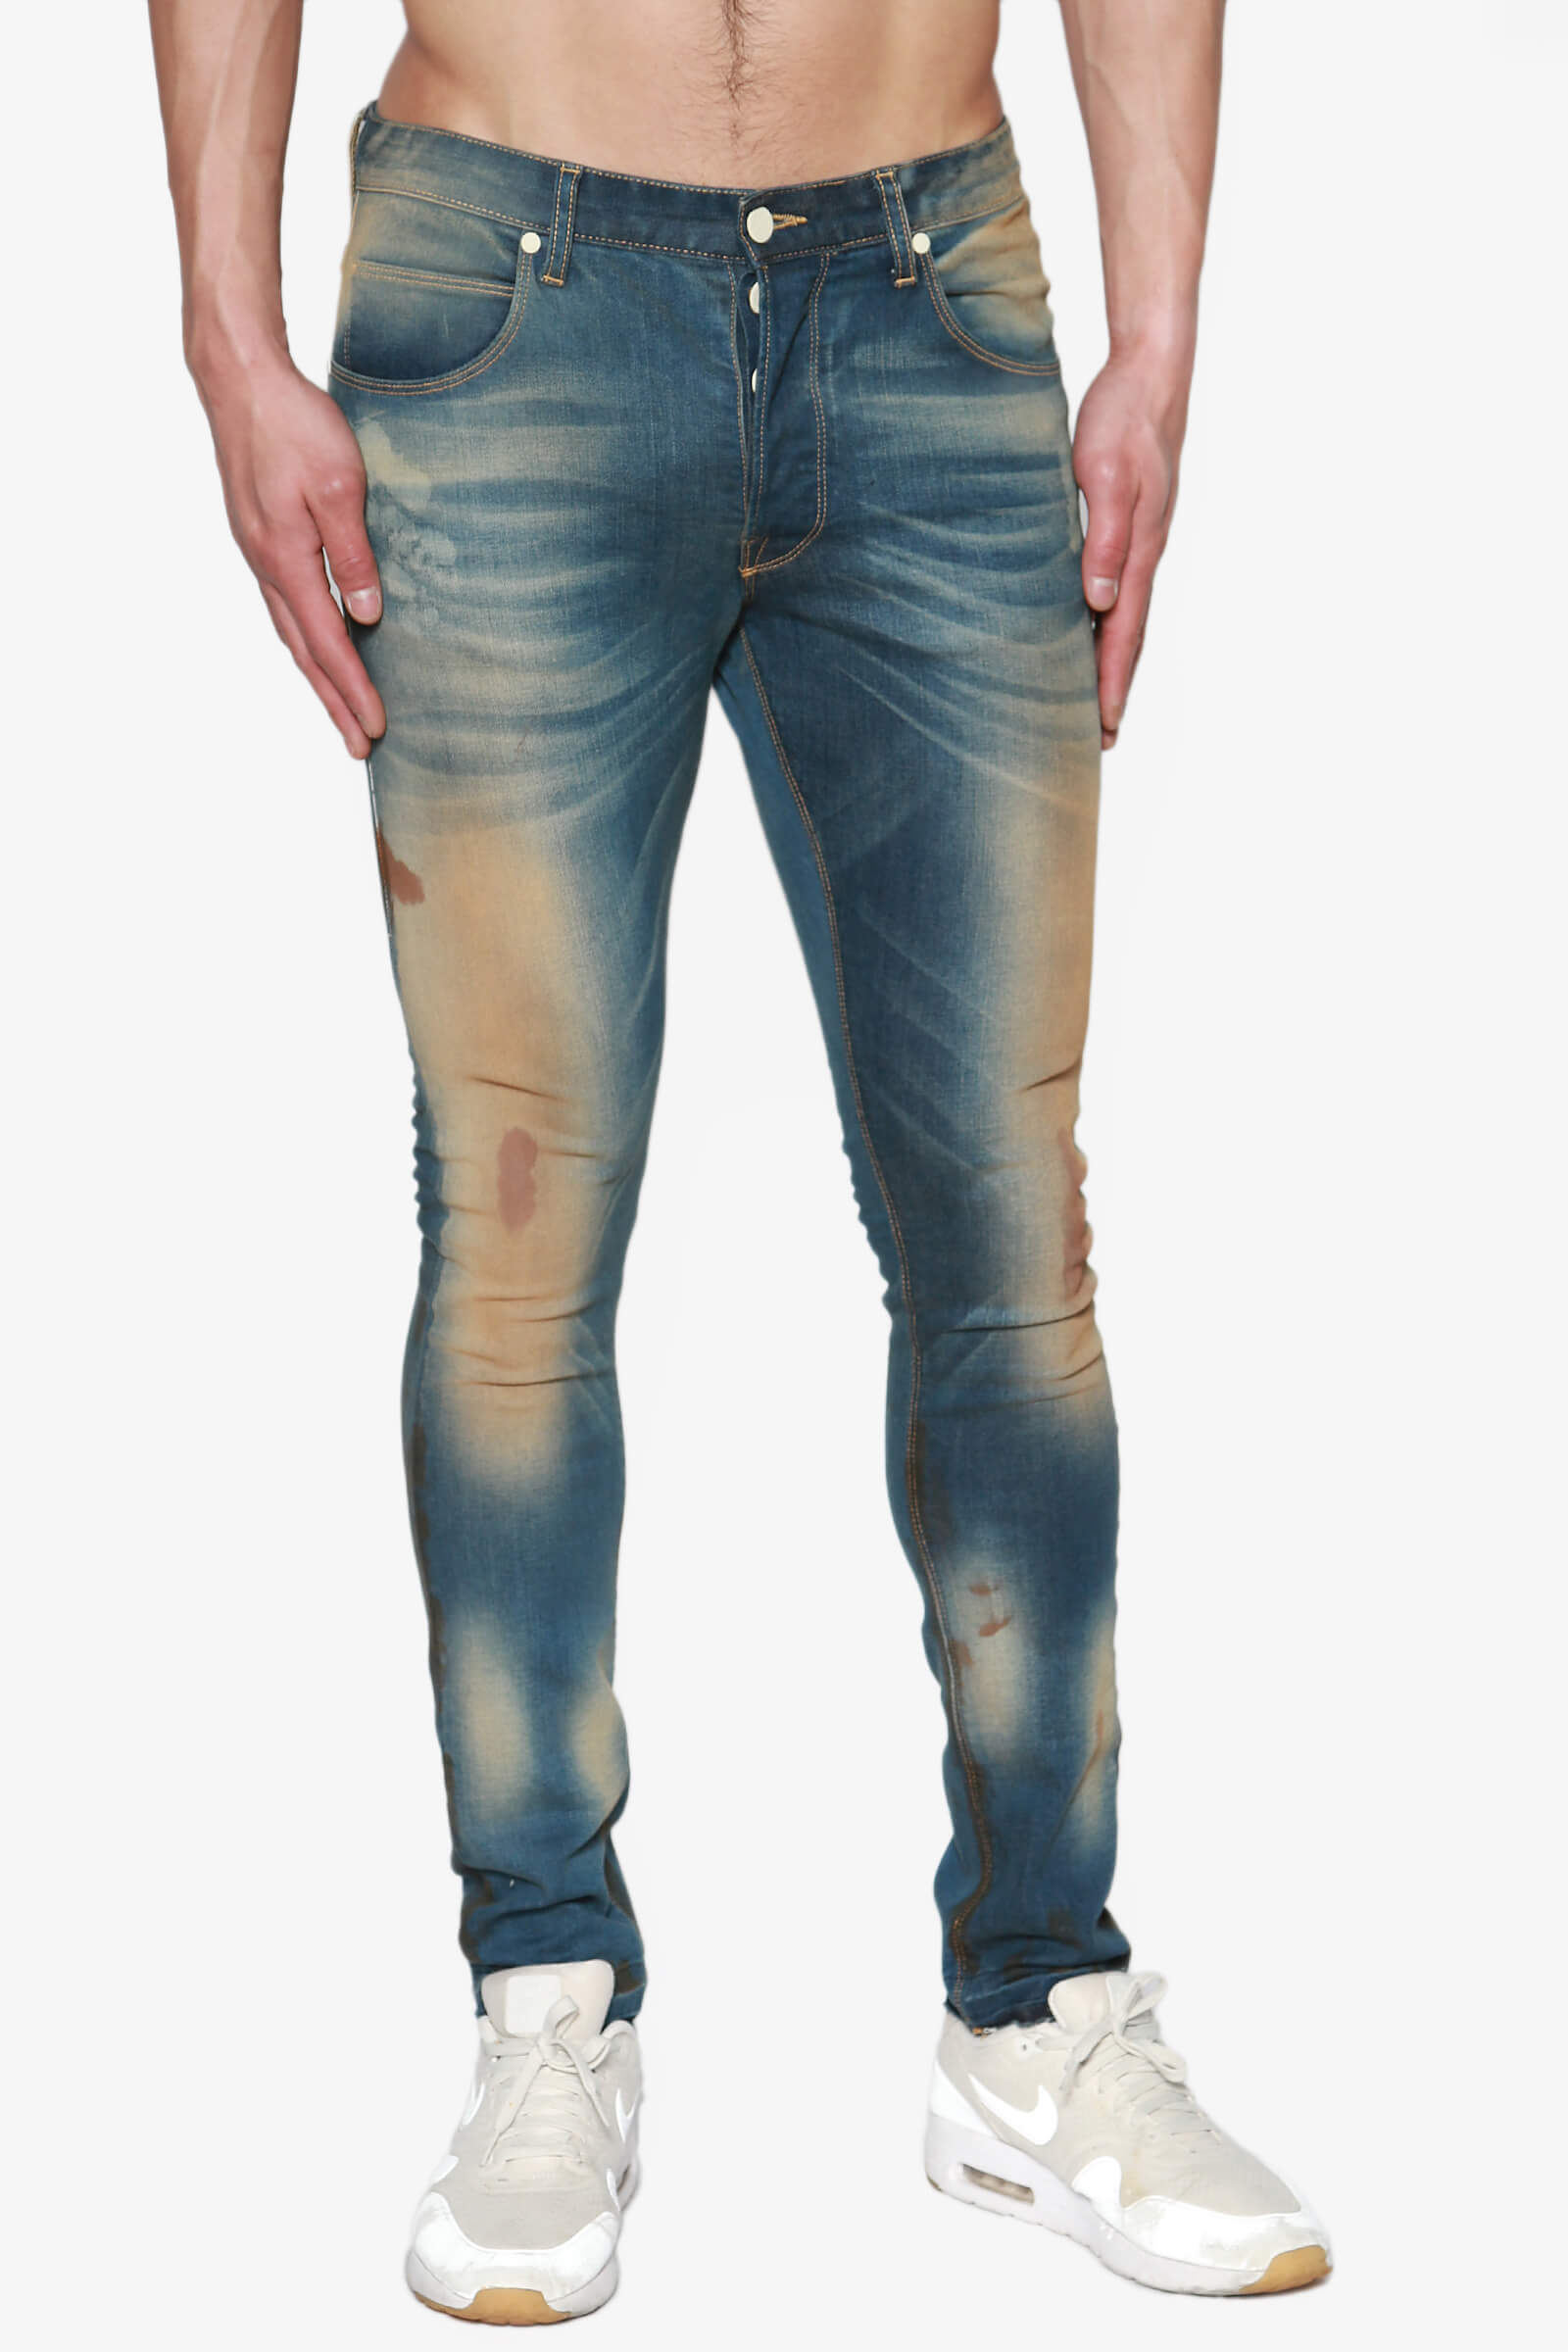 07d9d17d25817 TheMogan Men s Coffee Stain Vintage Washed Stretch Denim Tapered Skinny  Jeans